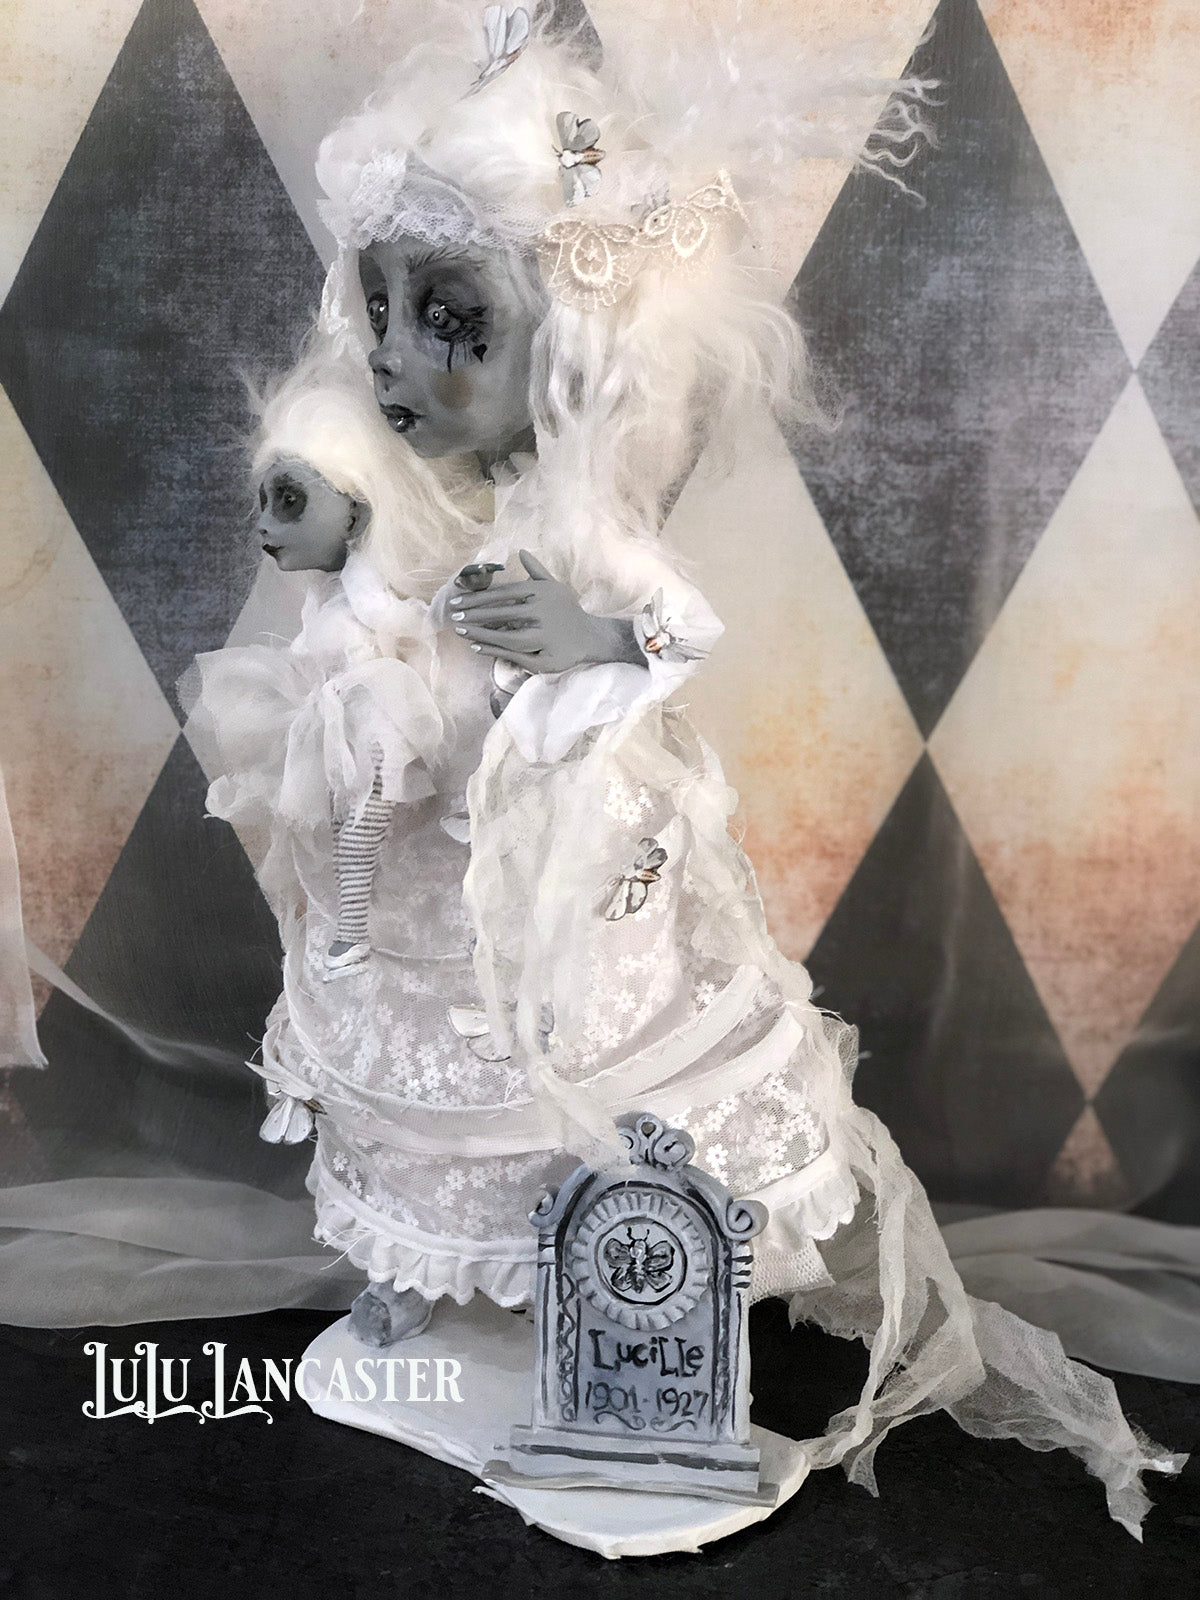 Lonely Lucille the Ghost OOAK original LuLu Lancaster Art Doll